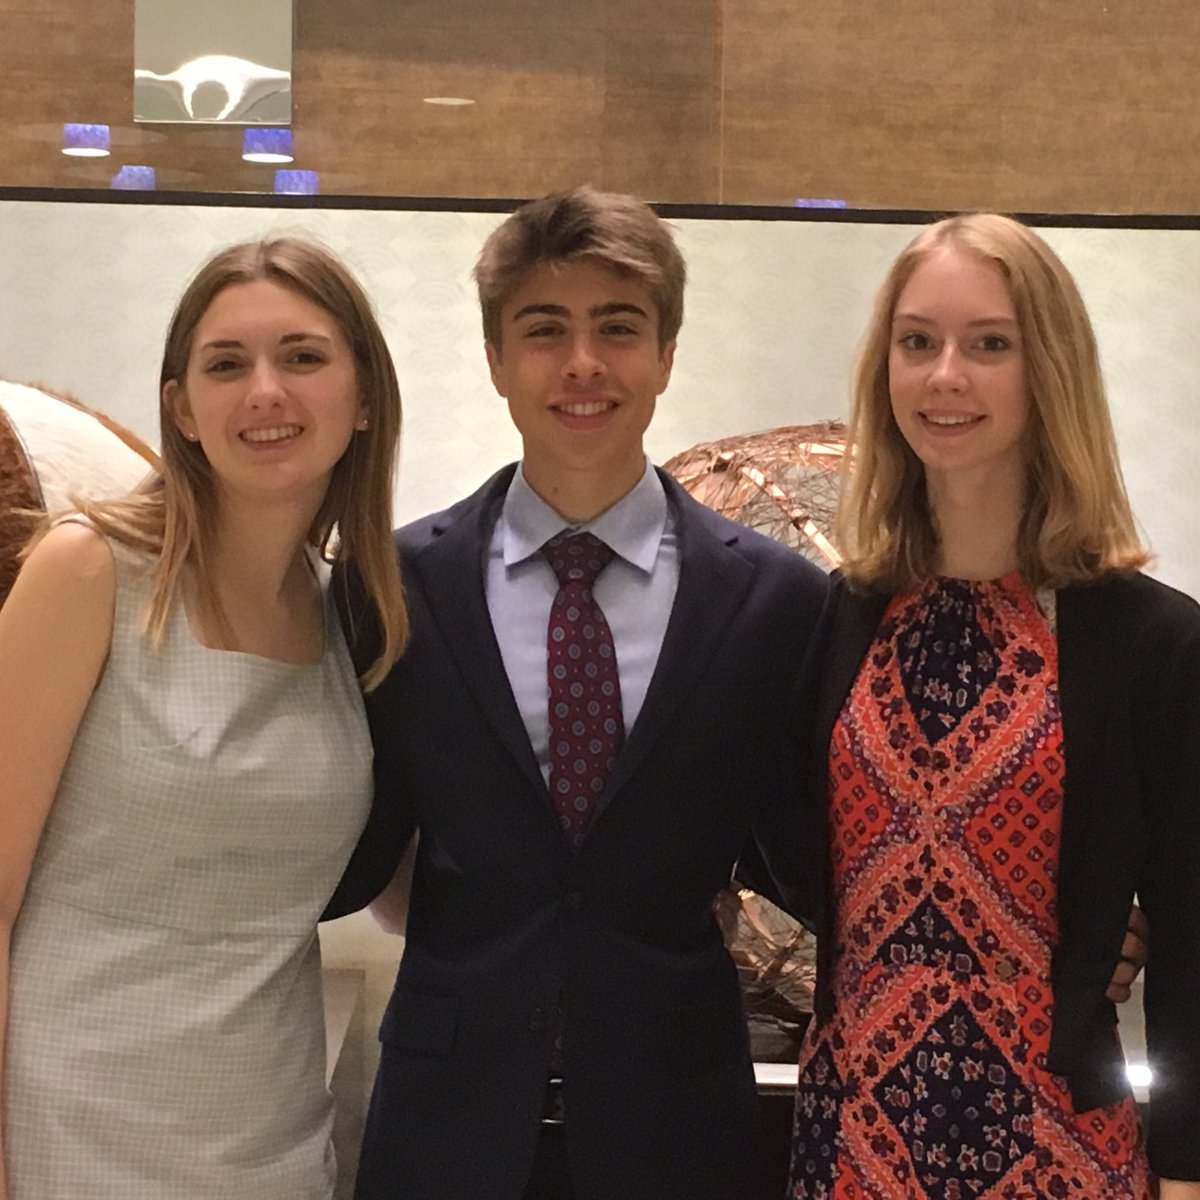 Students did a great job representing APS at INTEL ISEF 2019. So proud of them. <a target='_blank' href='http://twitter.com/APSVirginia'>@APSVirginia</a> <a target='_blank' href='http://twitter.com/GeneralsPride'>@GeneralsPride</a>  <a target='_blank' href='http://twitter.com/YorktownHS'>@YorktownHS</a> <a target='_blank' href='http://search.twitter.com/search?q=IntelISEF19'><a target='_blank' href='https://twitter.com/hashtag/IntelISEF19?src=hash'>#IntelISEF19</a></a> <a target='_blank' href='https://t.co/tXwFs1t4Aw'>https://t.co/tXwFs1t4Aw</a>